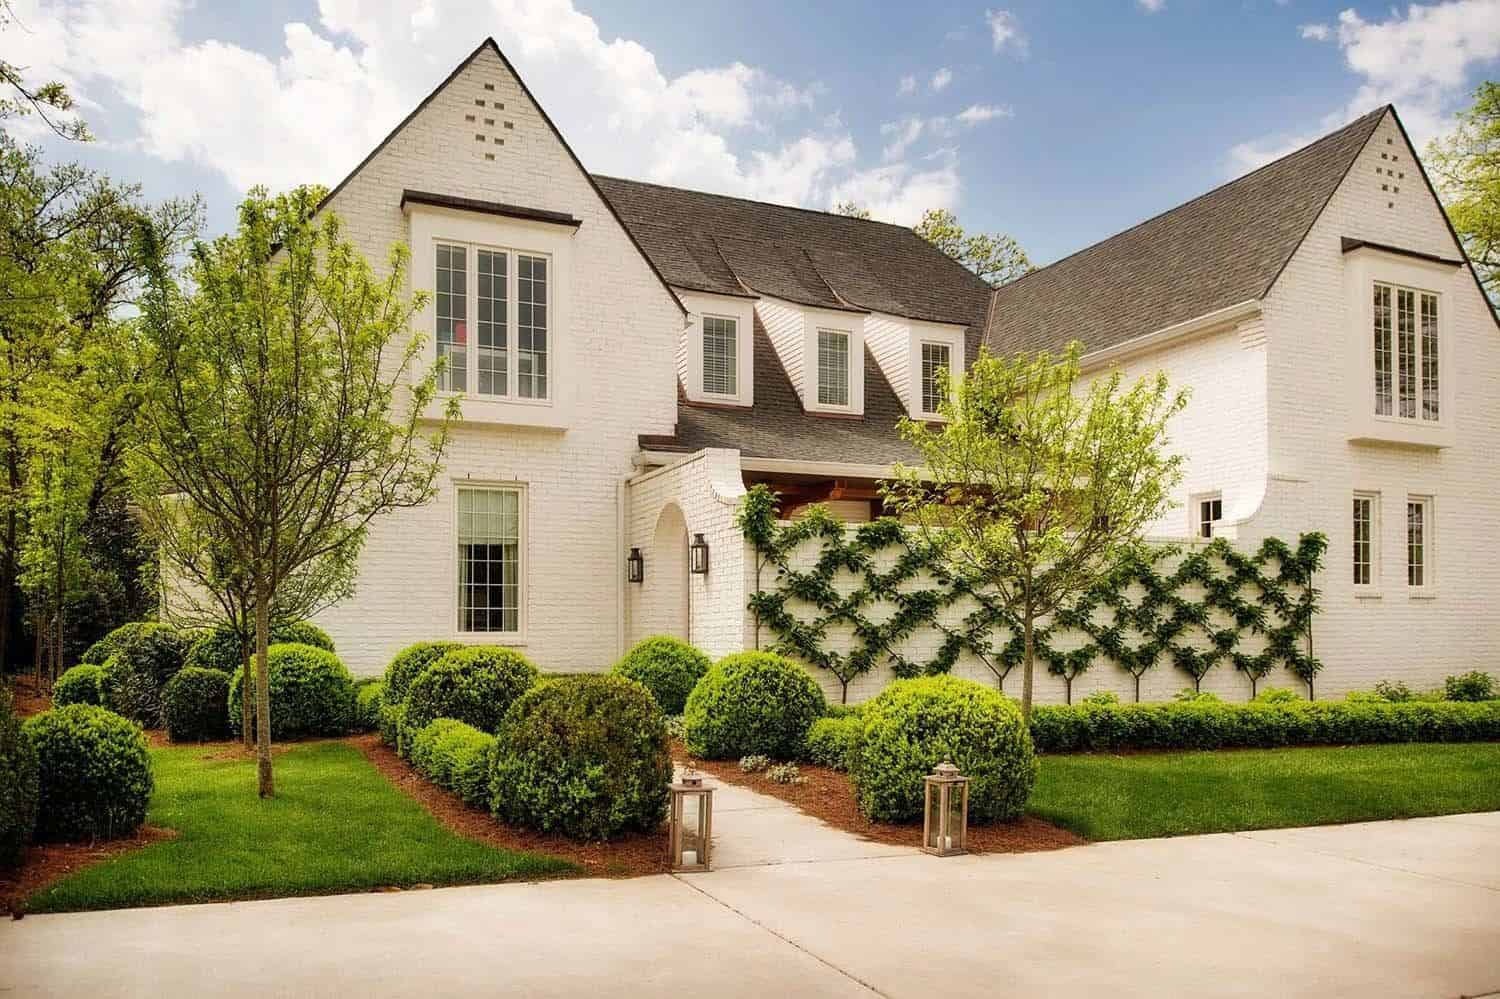 Best Kitchen Gallery: Charming English Country House In Nashville With A Modern Twist of Modern Homes Nashville  on rachelxblog.com